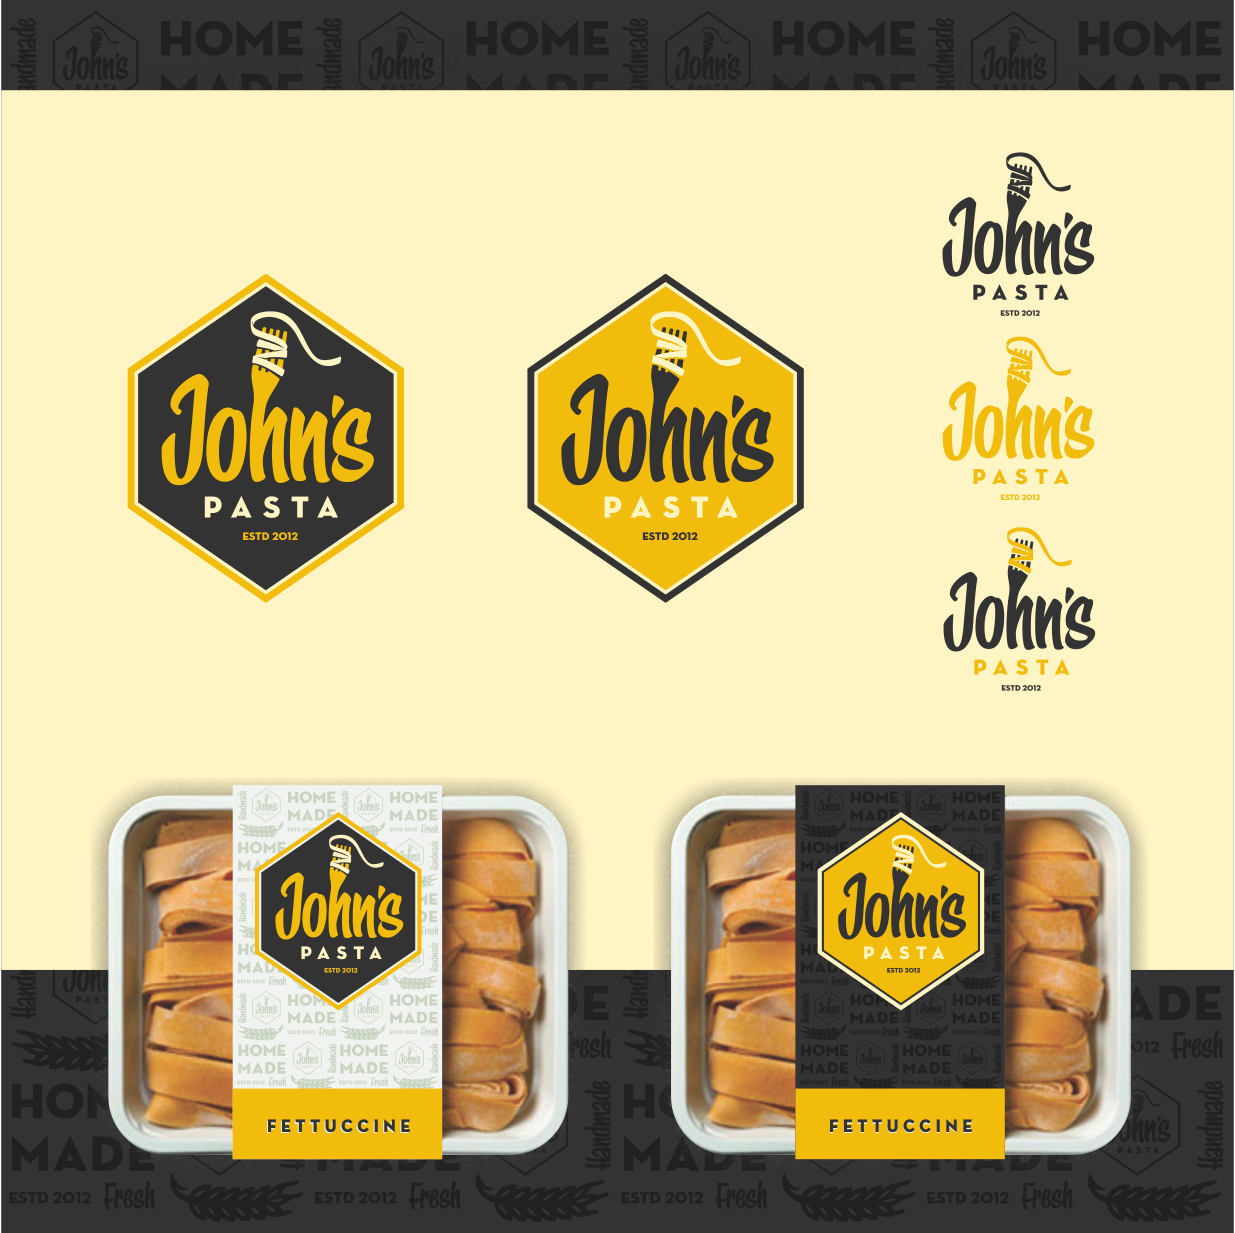 New vintage logo wanted for john's pasta